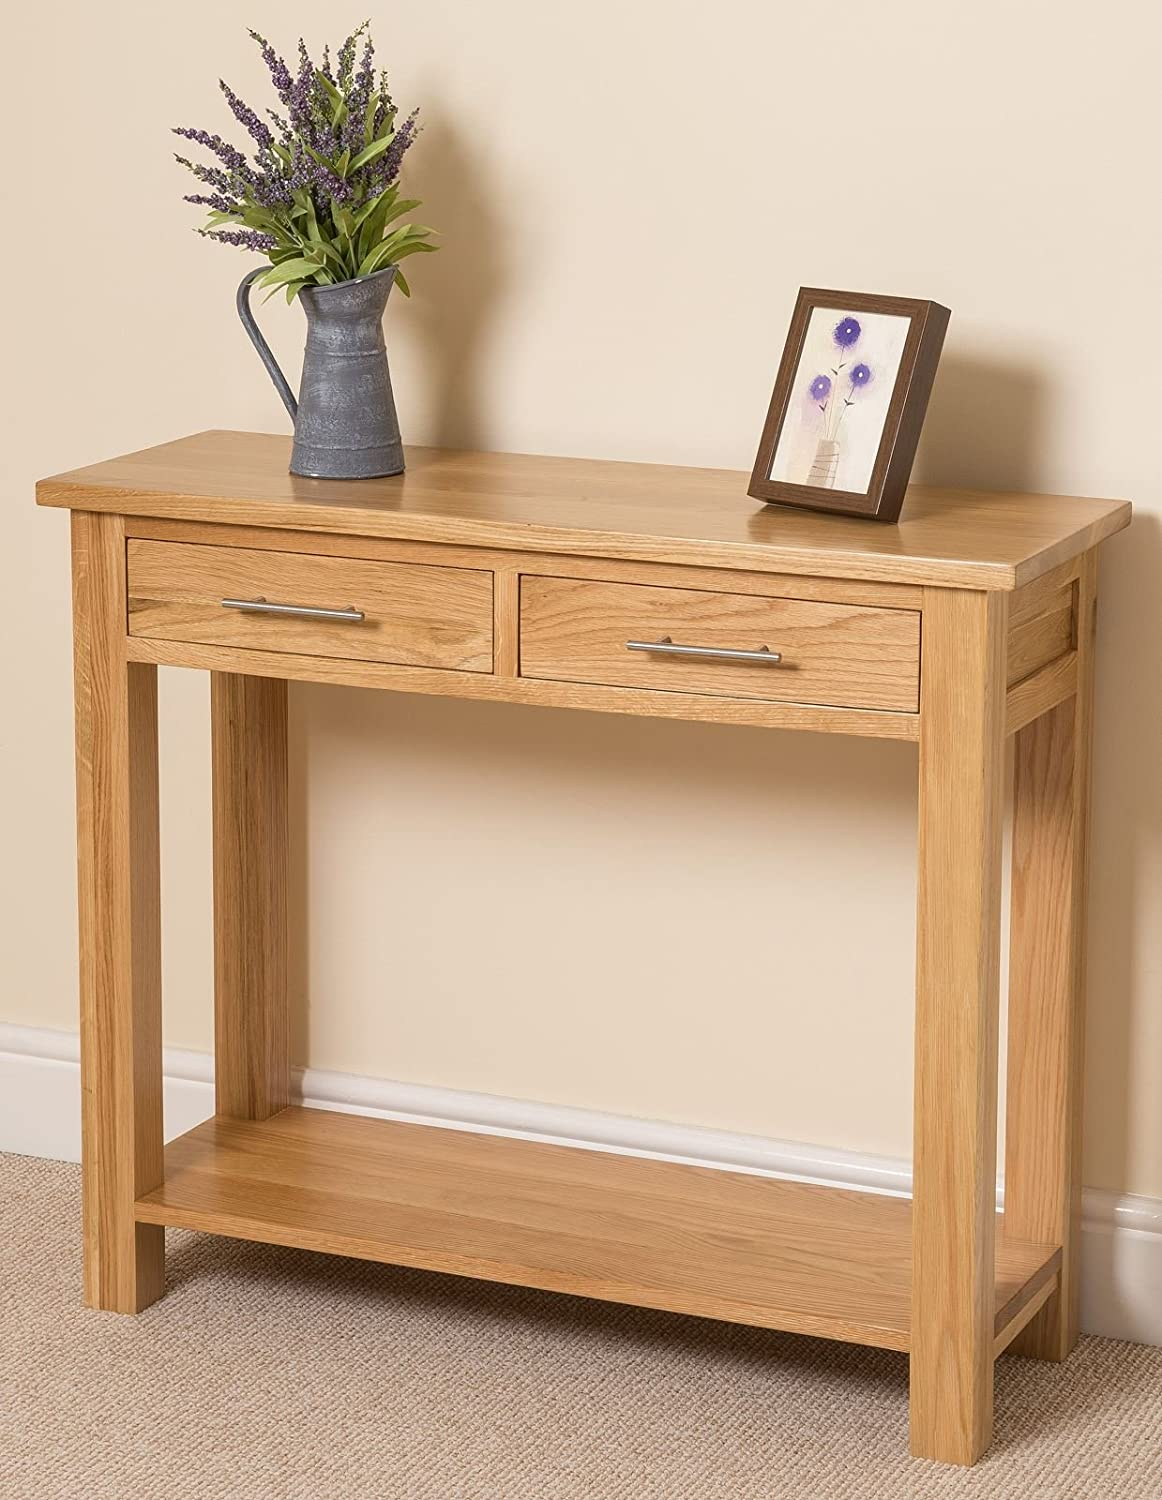 Oslo Solid Oak Console Table 100 X 35 X 85 Cm Amazon Co Uk Kitchen Home